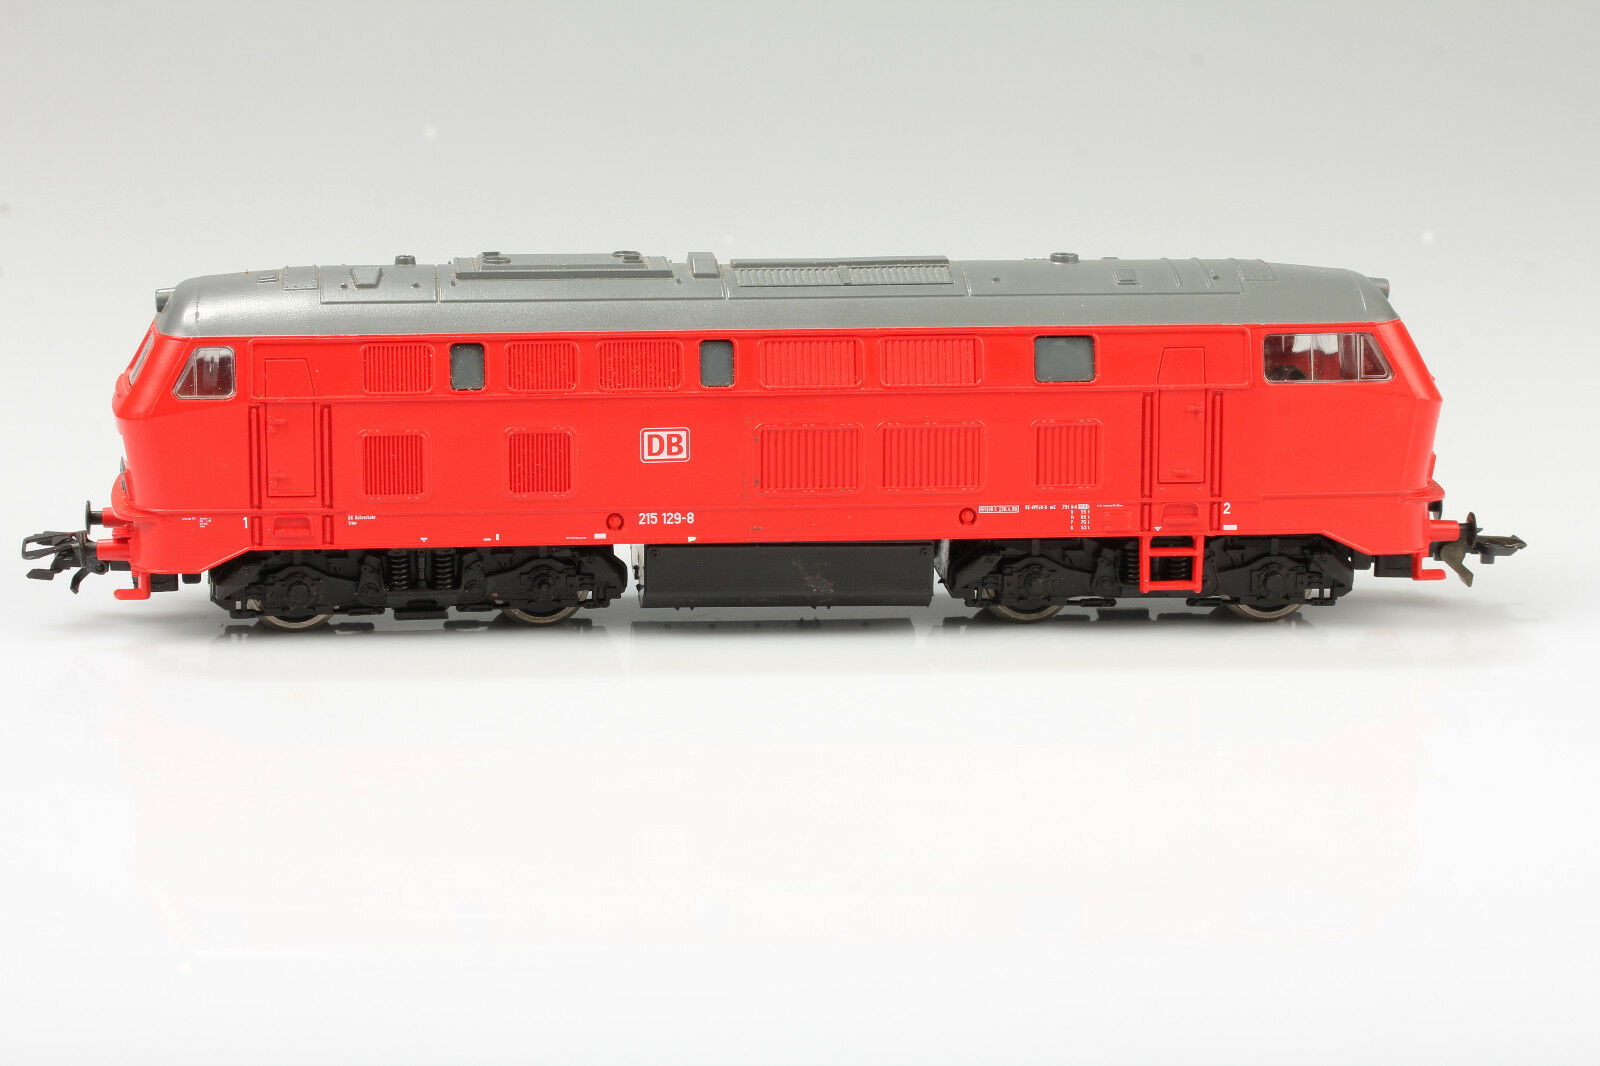 Roco h0 Diesel Locomotive DB BR 215 129-8 Running Light OK dirt scratches O. OVP